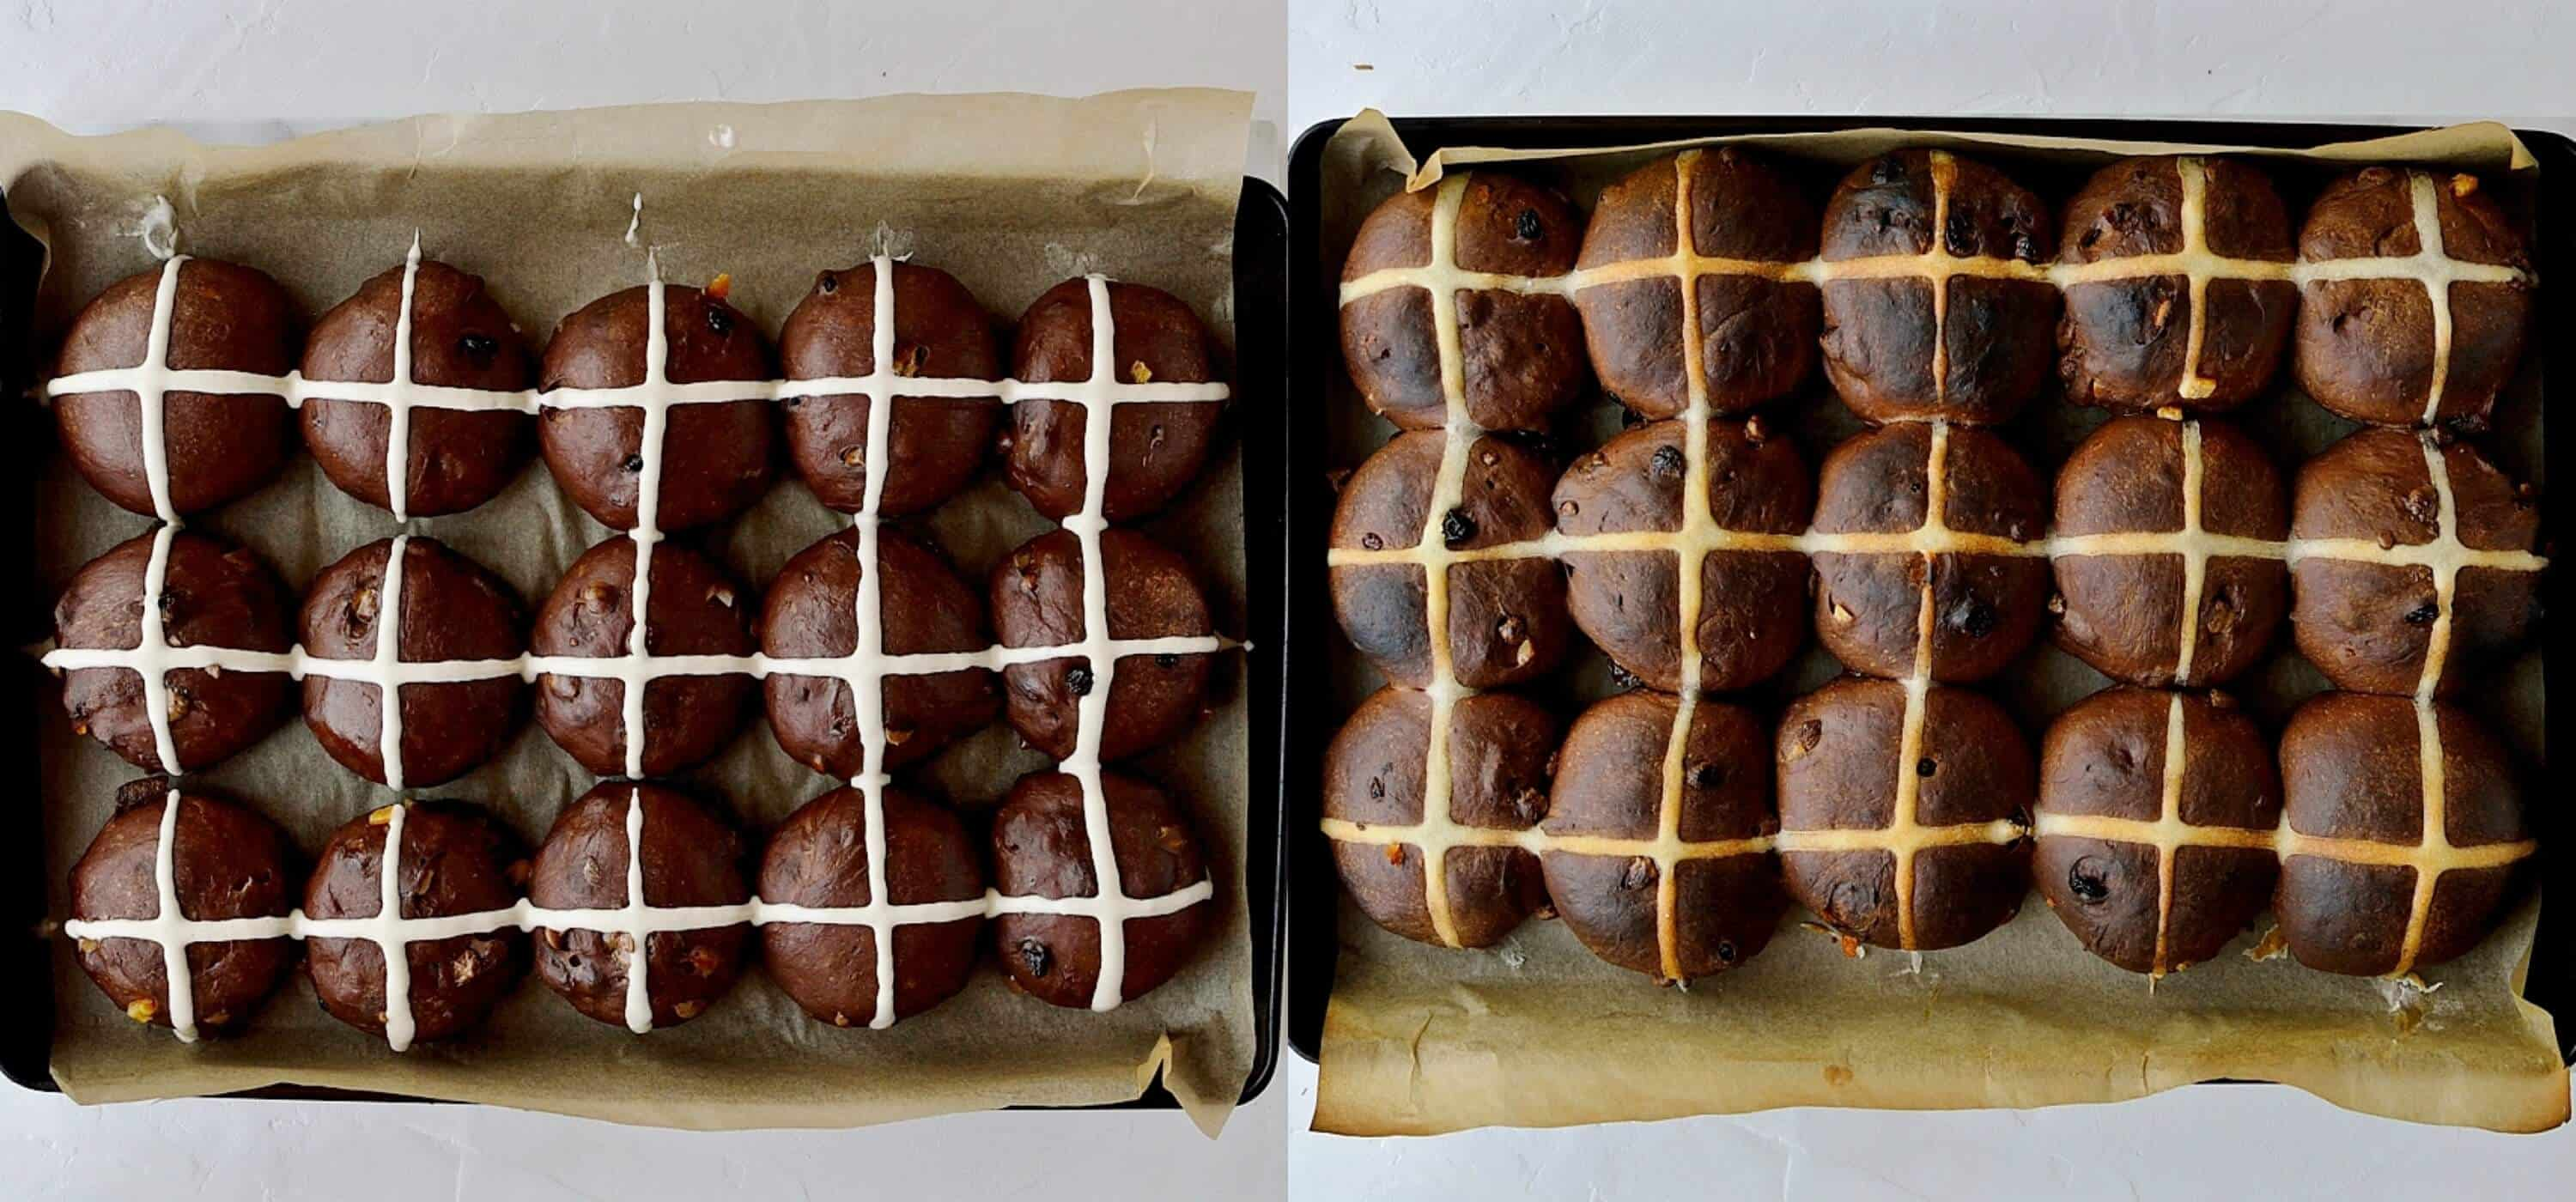 Step 6 - piping the crosses and baking the buns